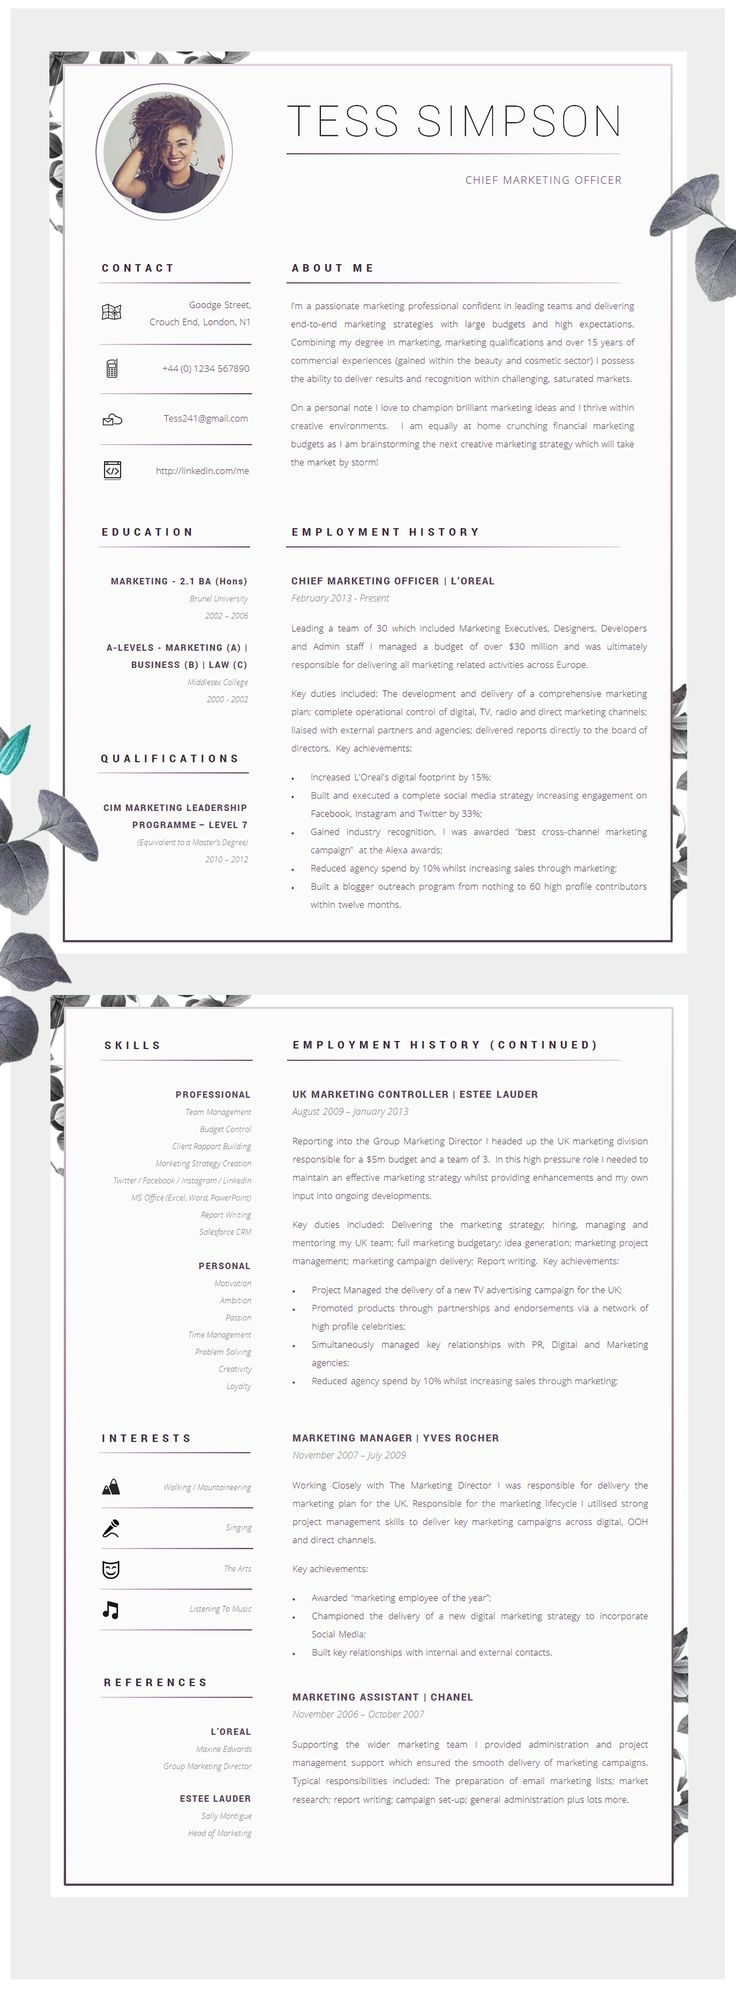 cv template creative resume template two page professional cv cover letter advice printable for word the beauvoir creative cv